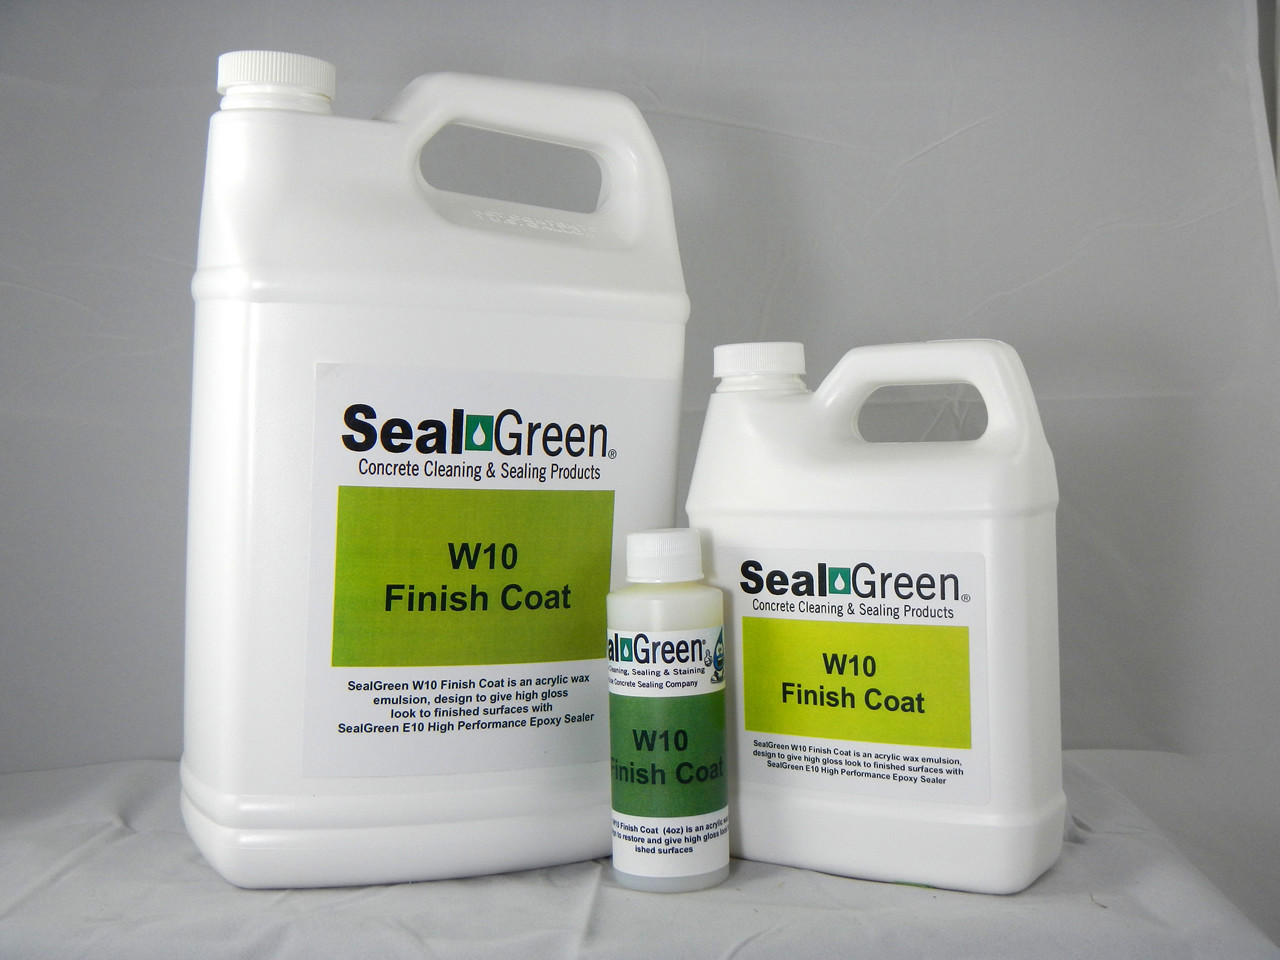 SealGreen W10 High Gloss Finish Coat